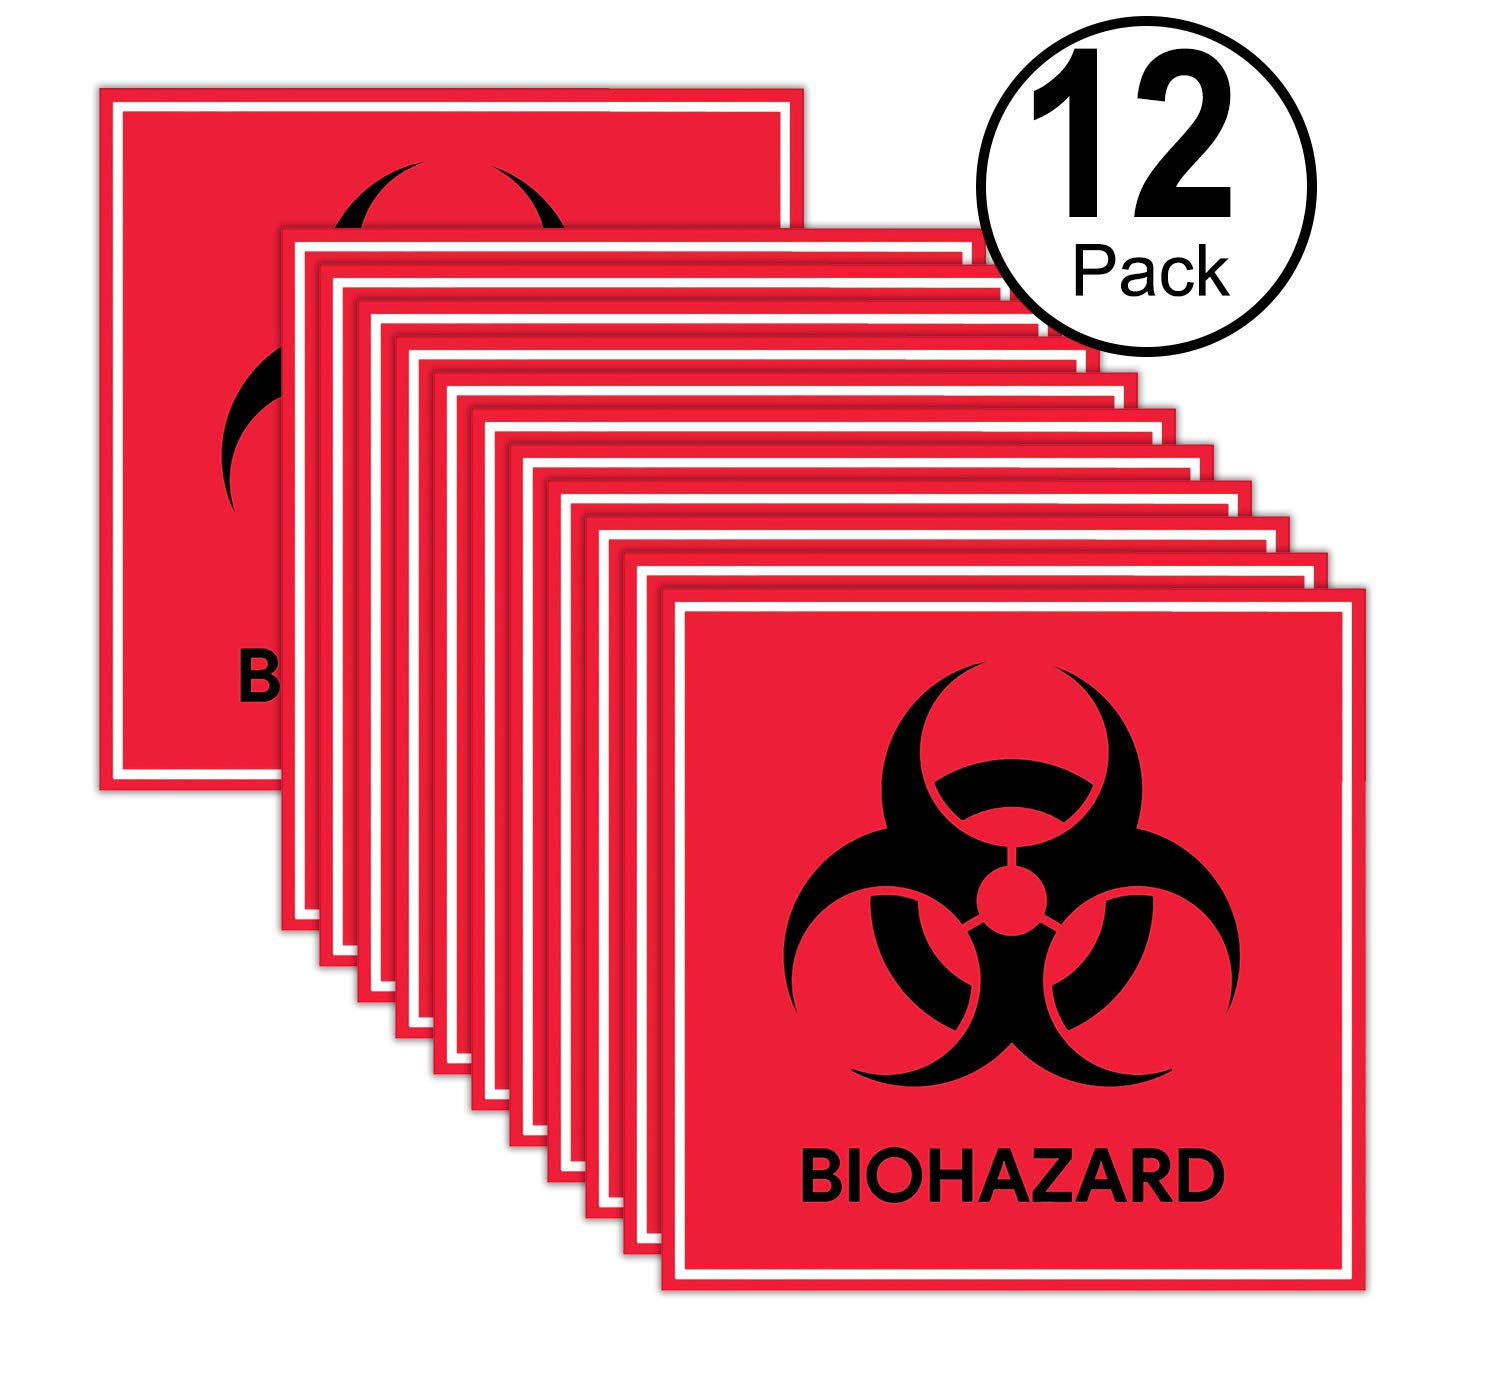 Hospitals Red Pack of 12 Biohazard Stickers Signs and Industrial Use | 4 X 4 Hazardous Materials Warning Label Stickers Decals Waterproof for Labs